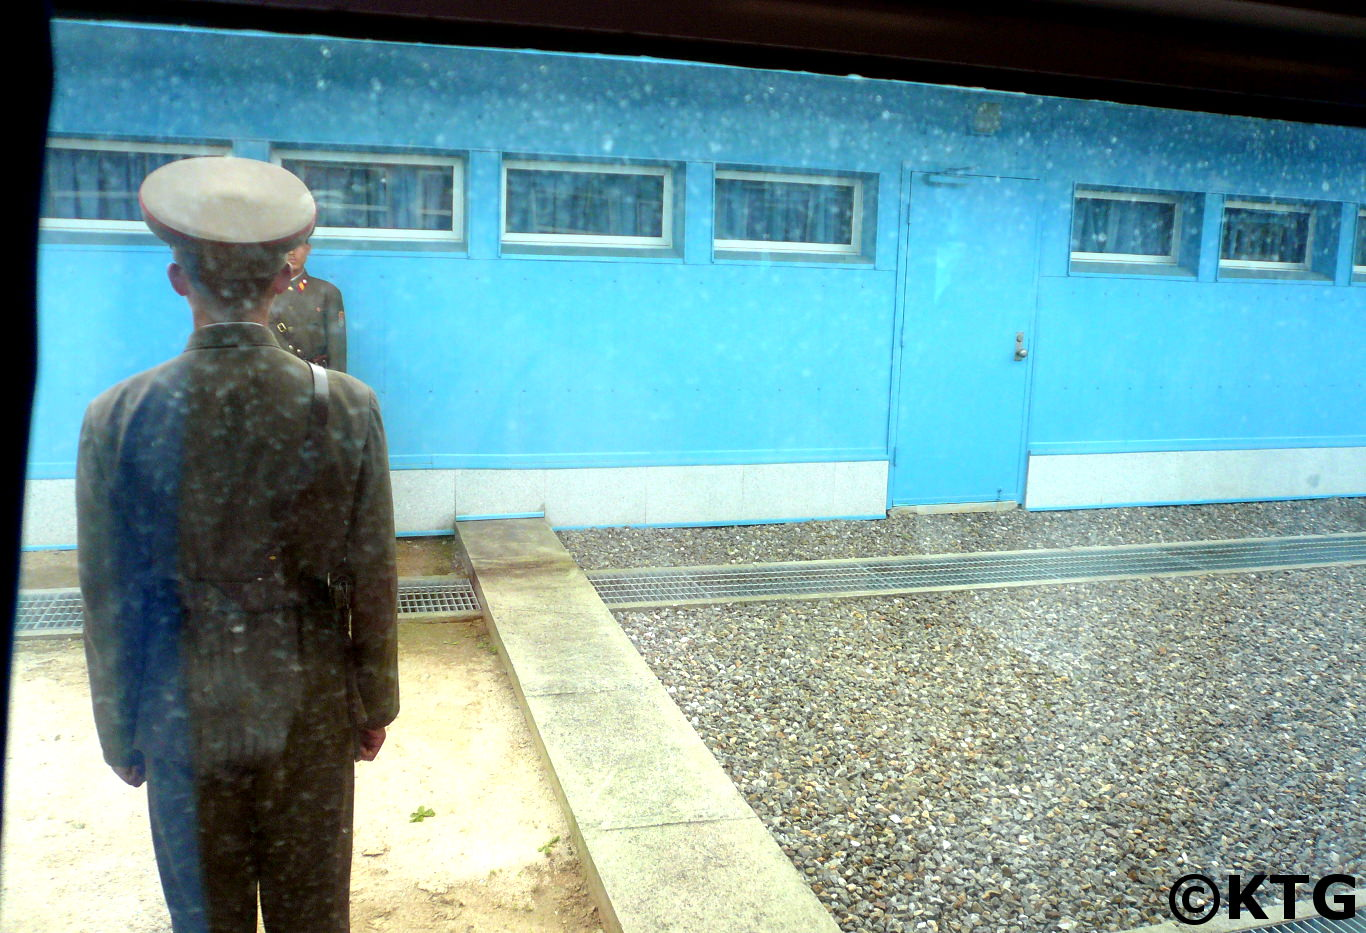 The concrete slab marks the demarcation line in Panmunjom at the DMZ and separates North and South Korea